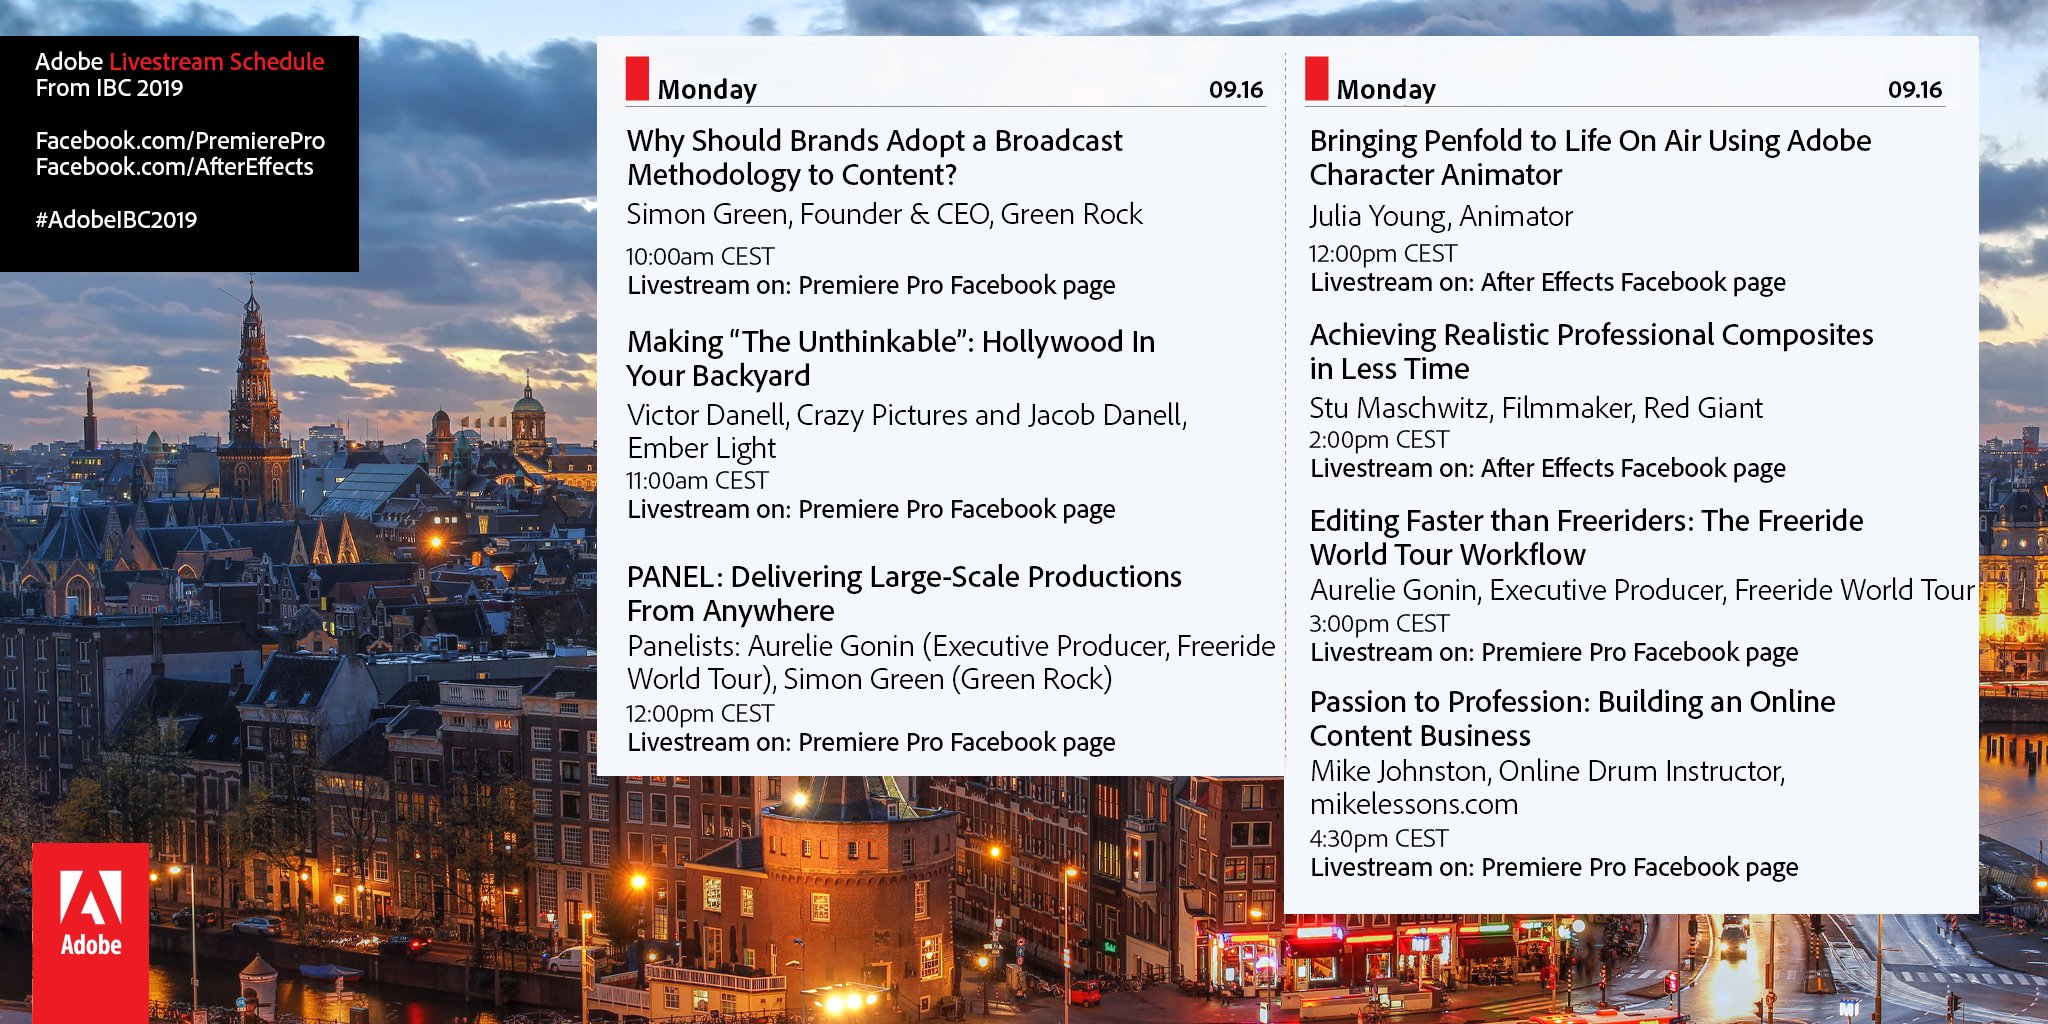 Here's a look at our presentation schedule for Monday, Sept 16th @IBCShow.   #IBC2019 | #AdobeIBC2019 https://t.co/2D1te3UTlj